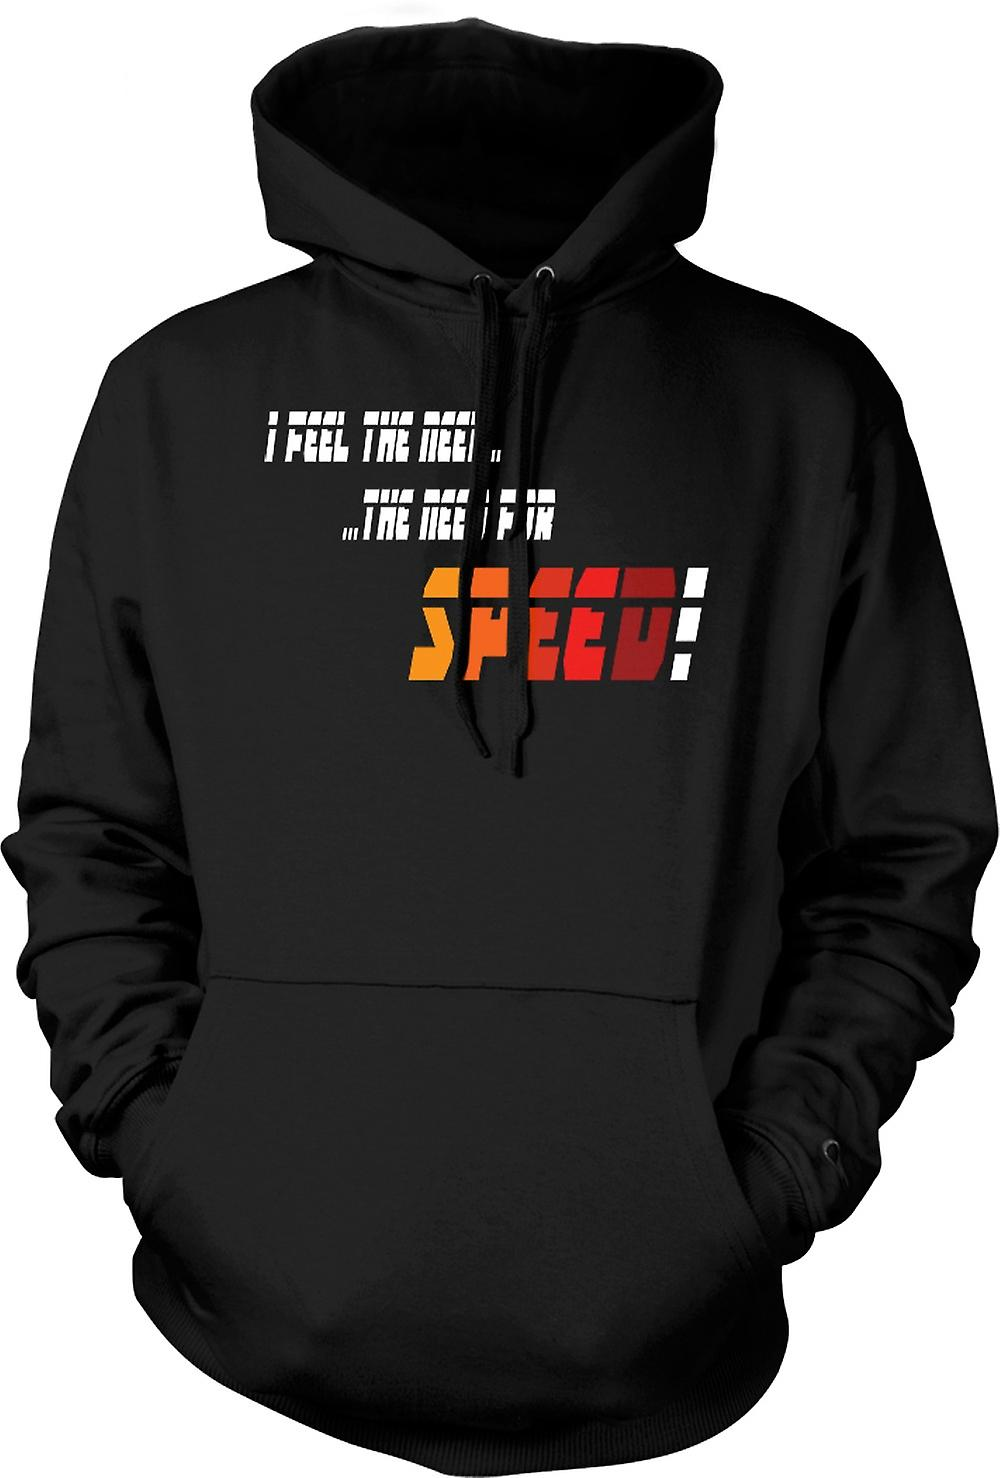 Mens Hoodie - Top Gun - ich fühle mich der Need For Speed - lustig